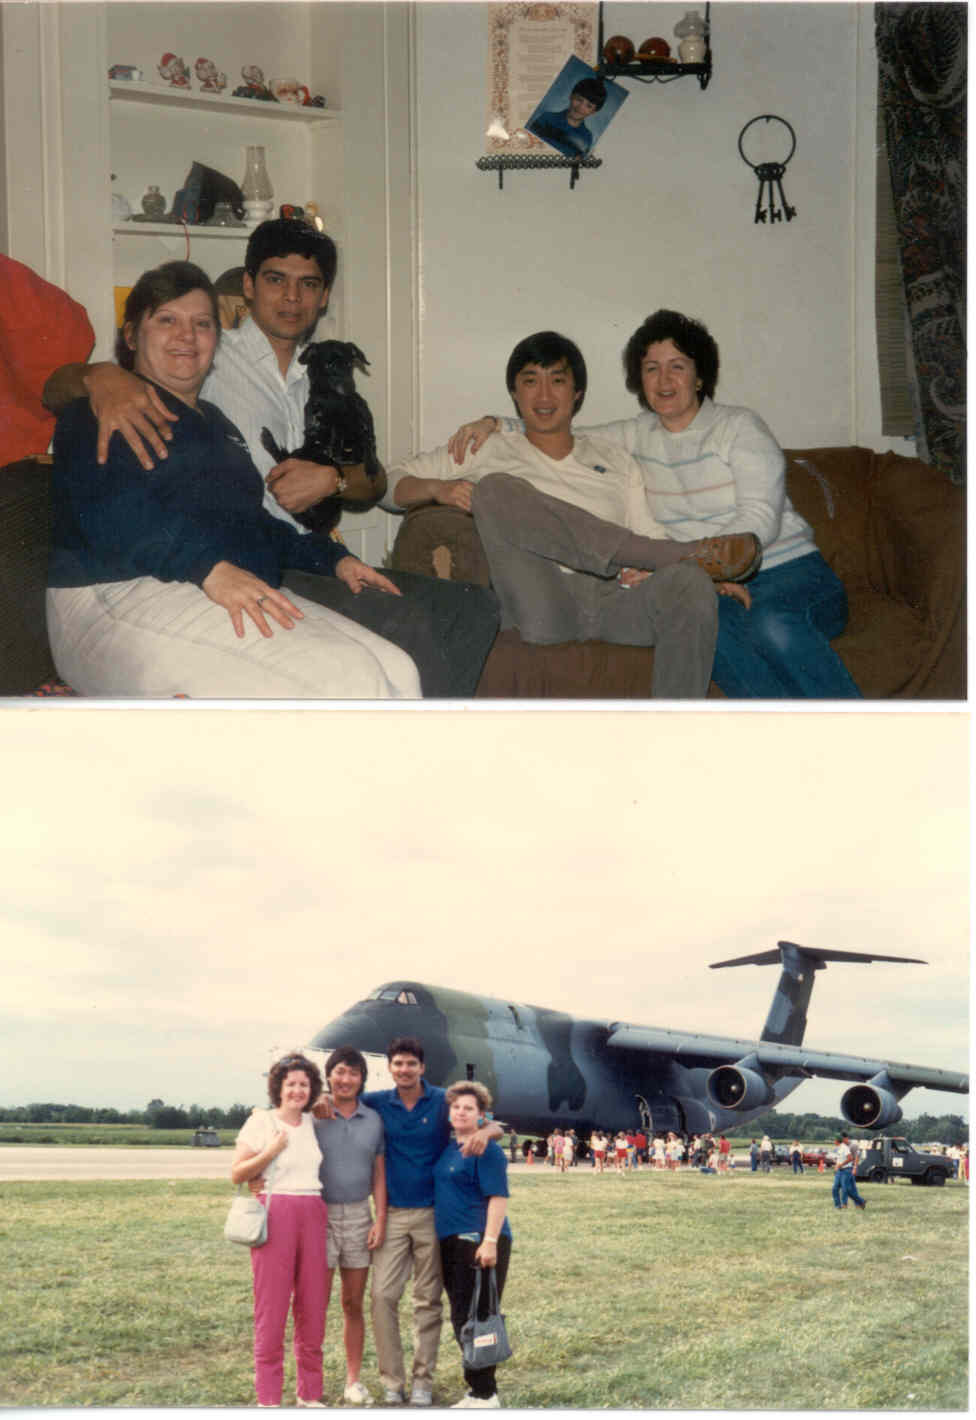 CLICK TO ENLARGE -Myself and my friend Lek (from Thailand) with Carolyn and Mary our respective wives (1987)